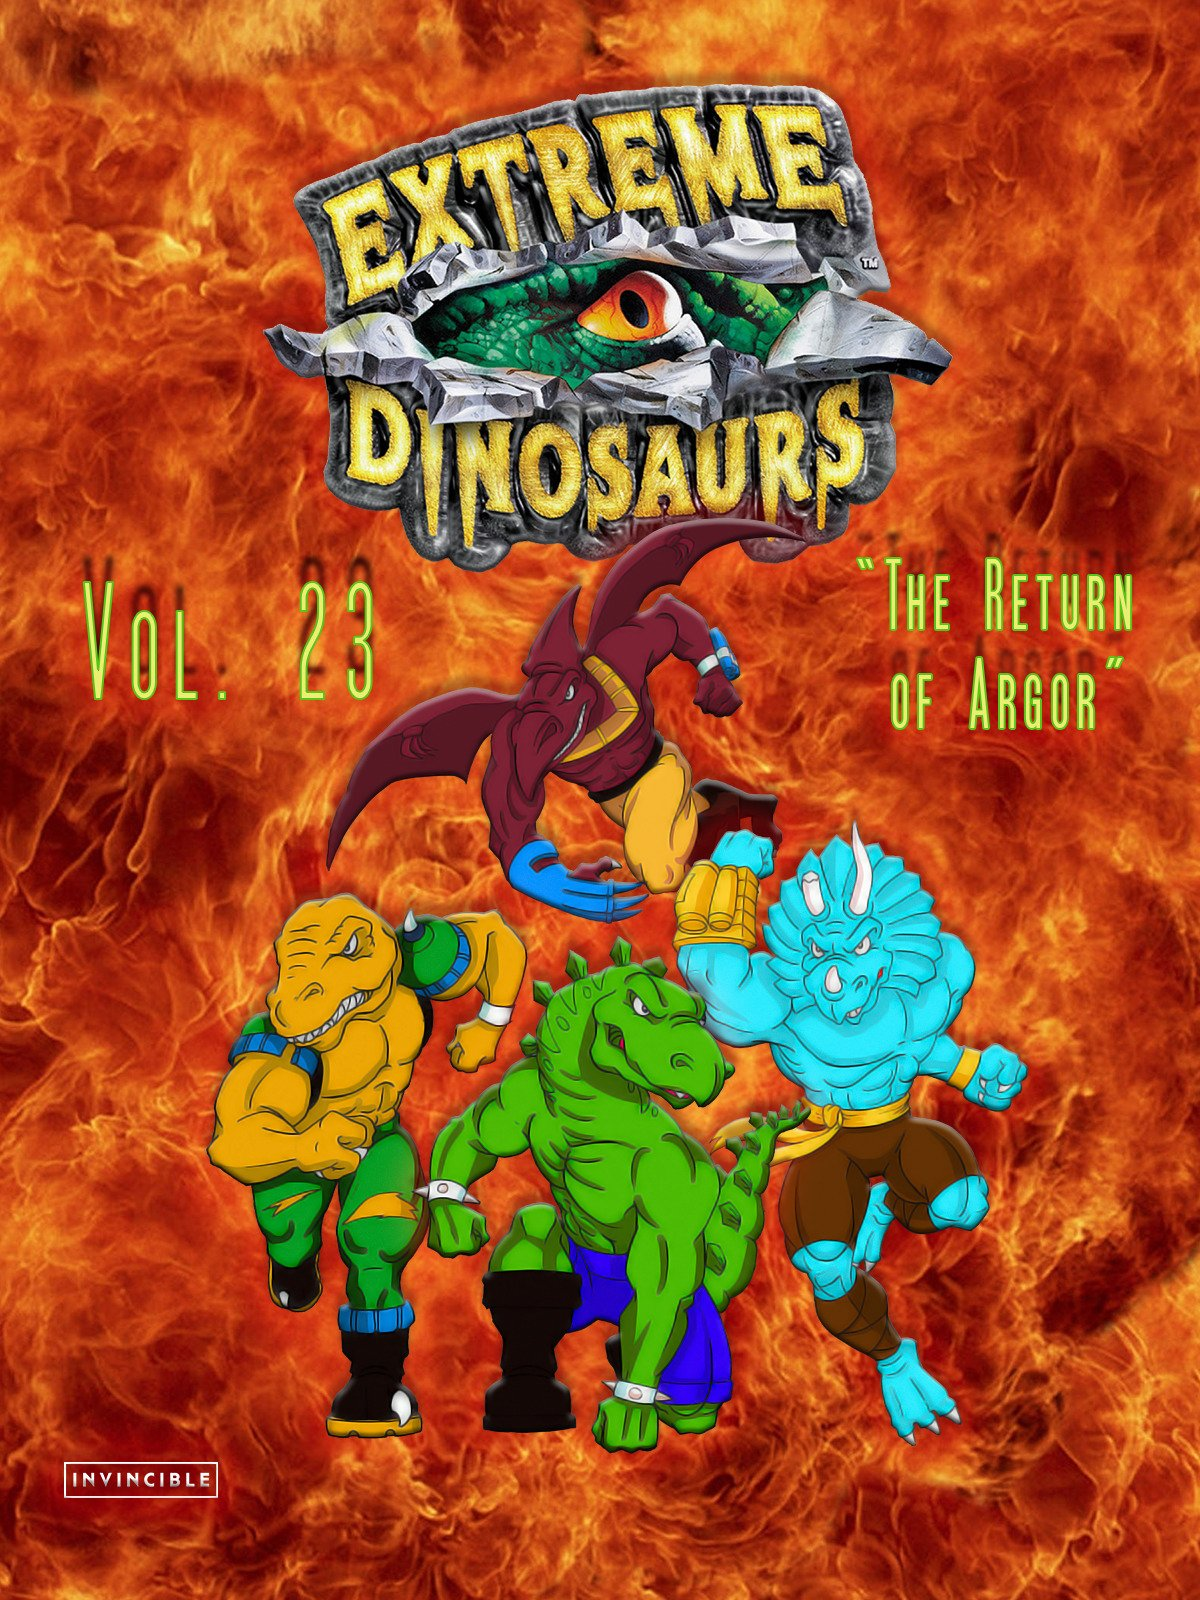 Extreme Dinosaurs Vol. 23The Return of Argor